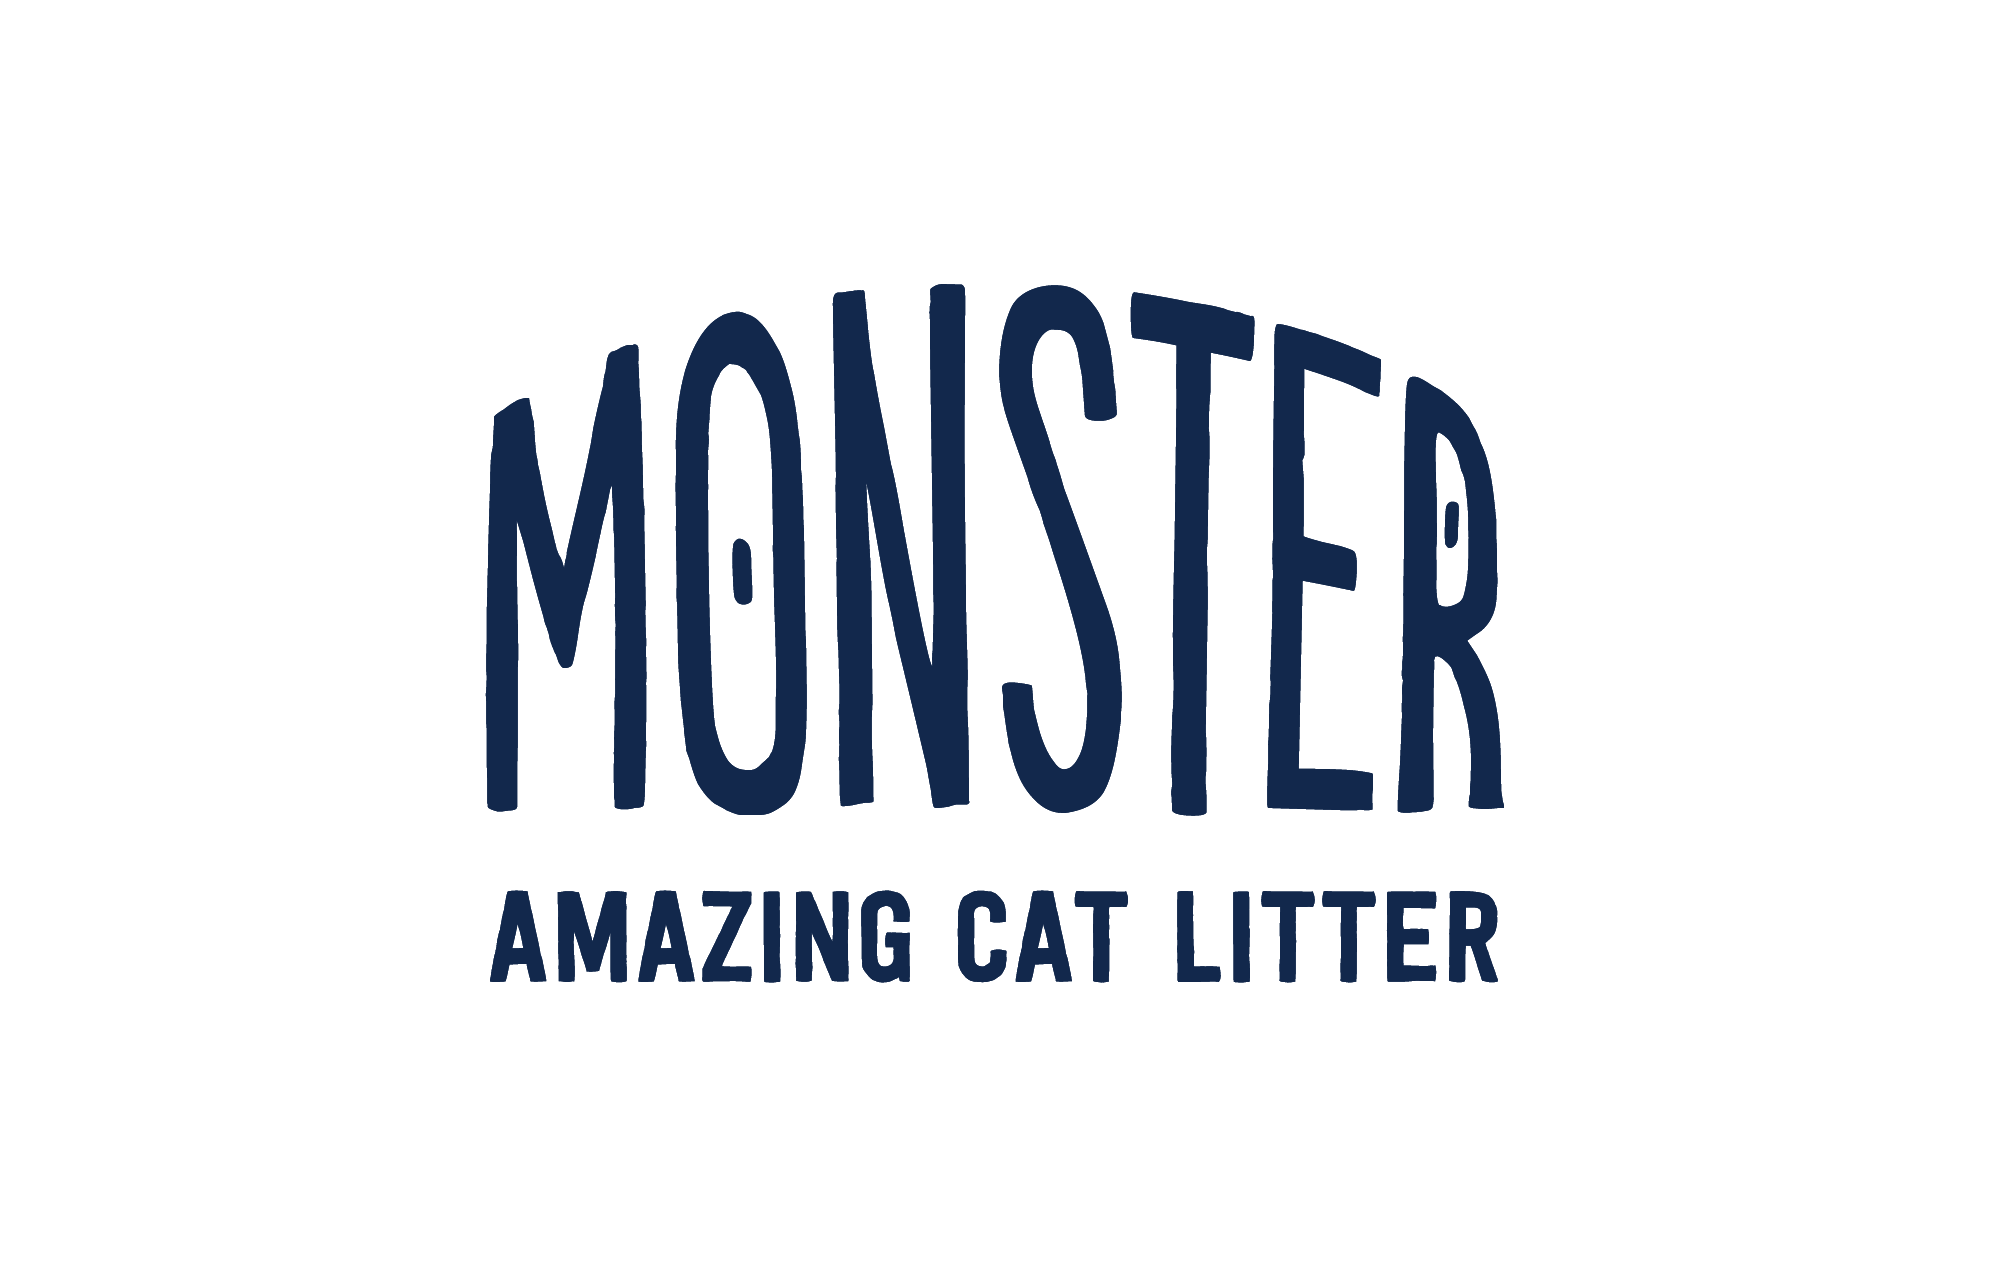 Blue Monster Amazing Cat Litter logo